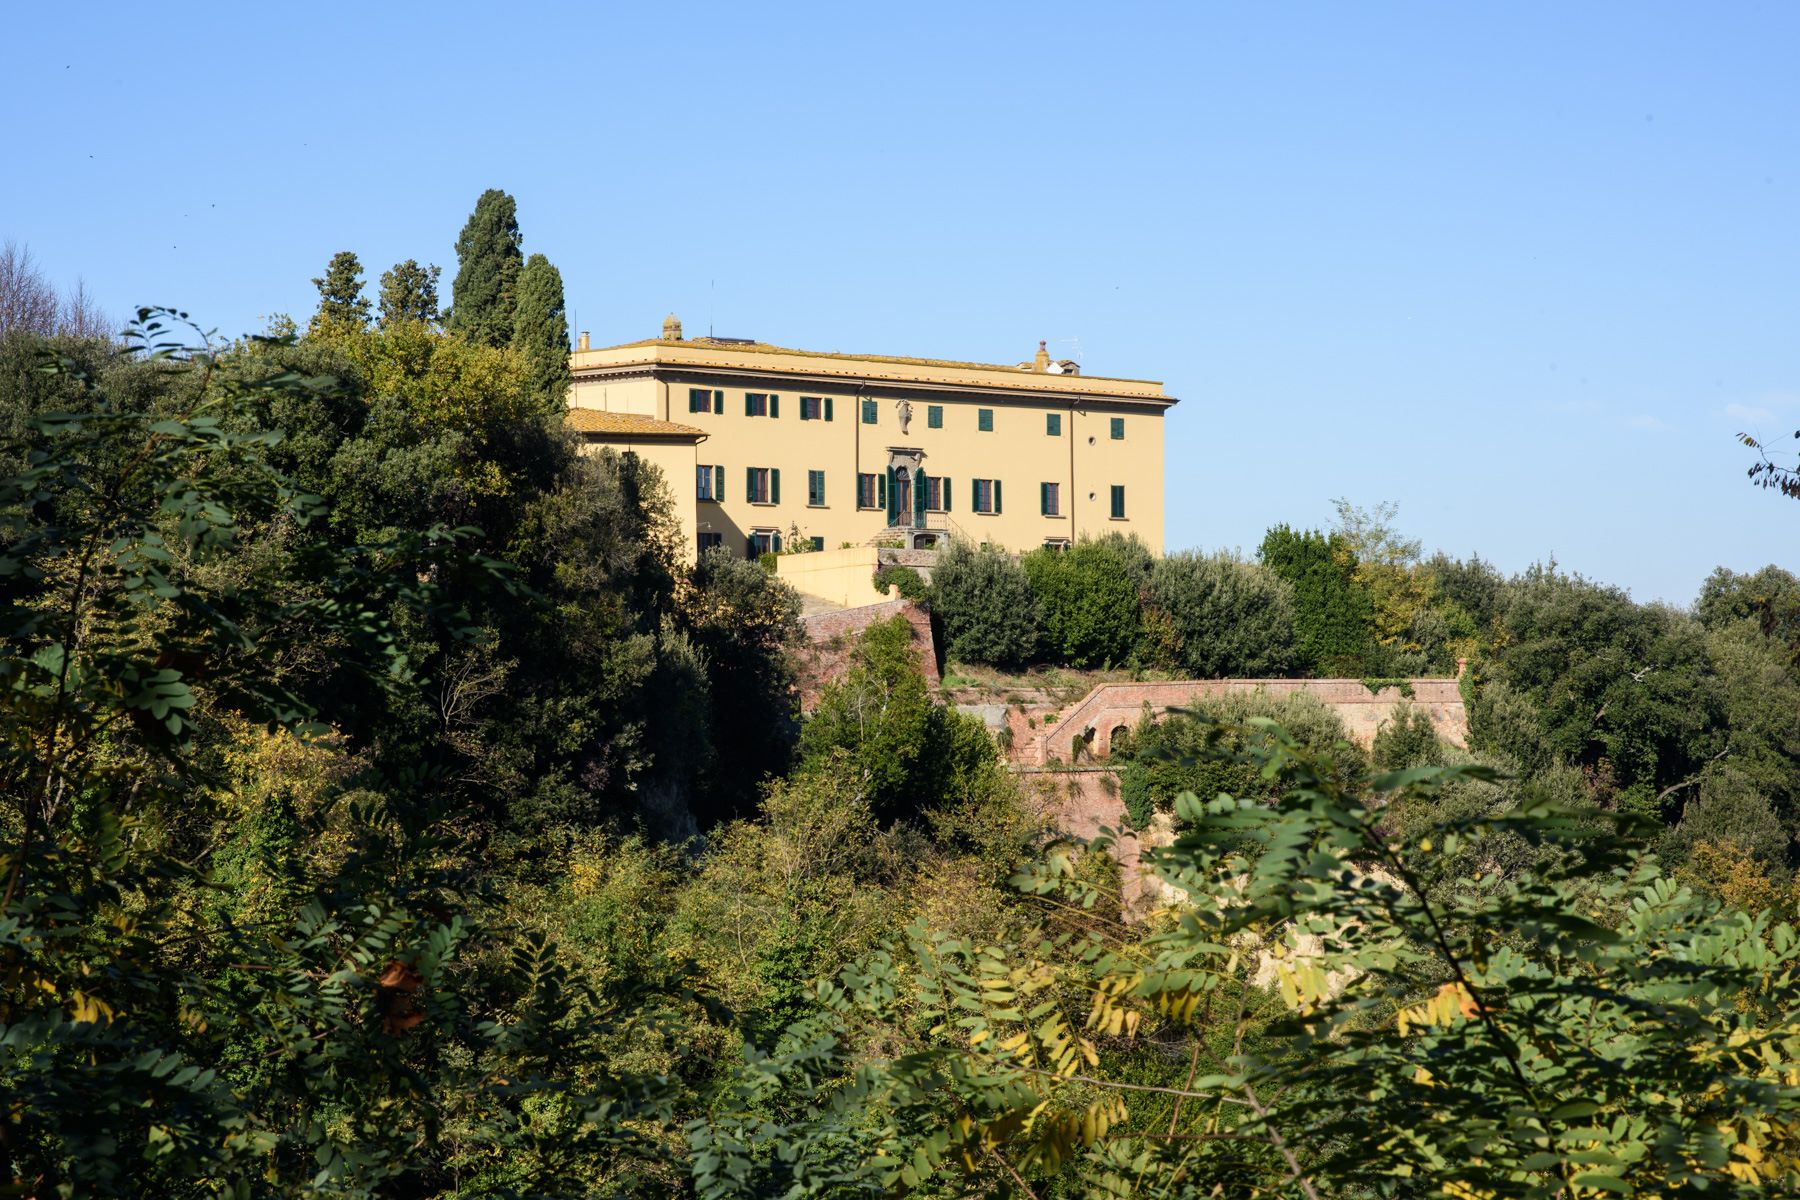 Single Family Home for Sale at Historic Estate in the Heart of Tuscany: Villa Strozzi in Collegalli Montaione, Florence Italy